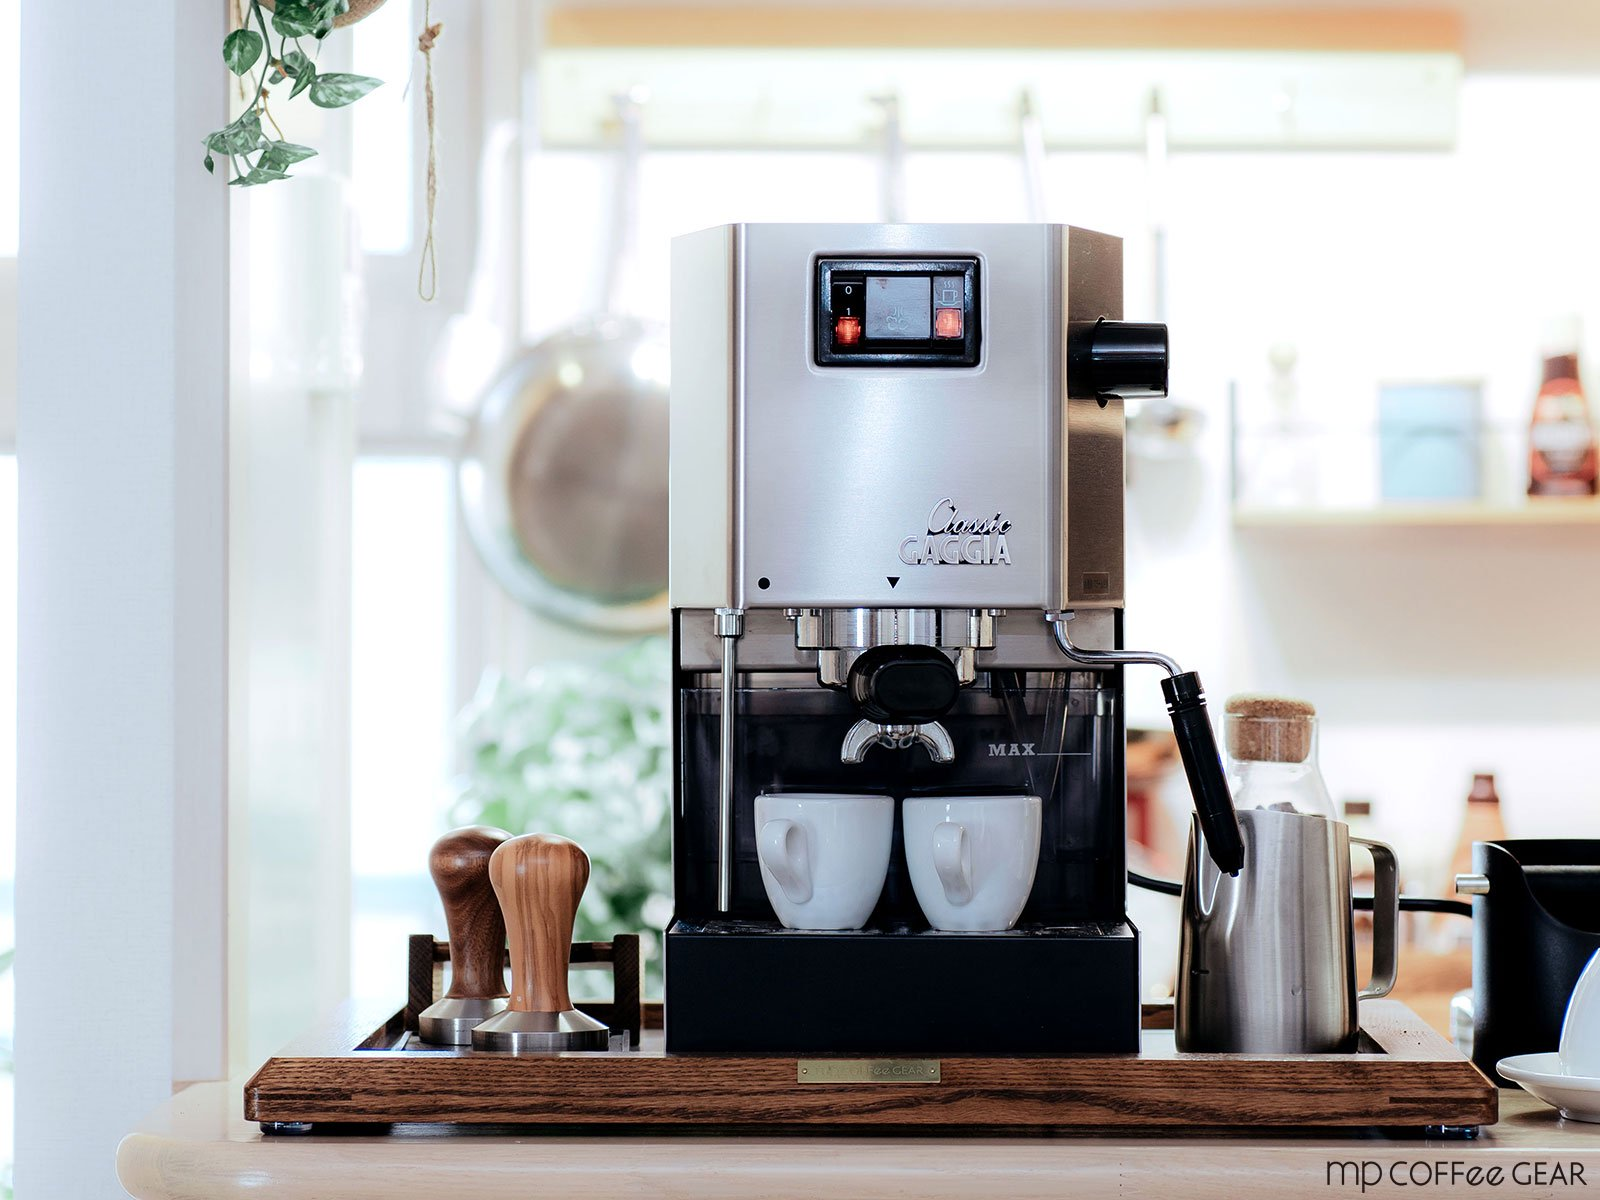 GAGGIA ガジア セミオートエスプレッソマシン Classic クラシック<img class='new_mark_img2' src='https://img.shop-pro.jp/img/new/icons24.gif' style='border:none;display:inline;margin:0px;padding:0px;width:auto;' />